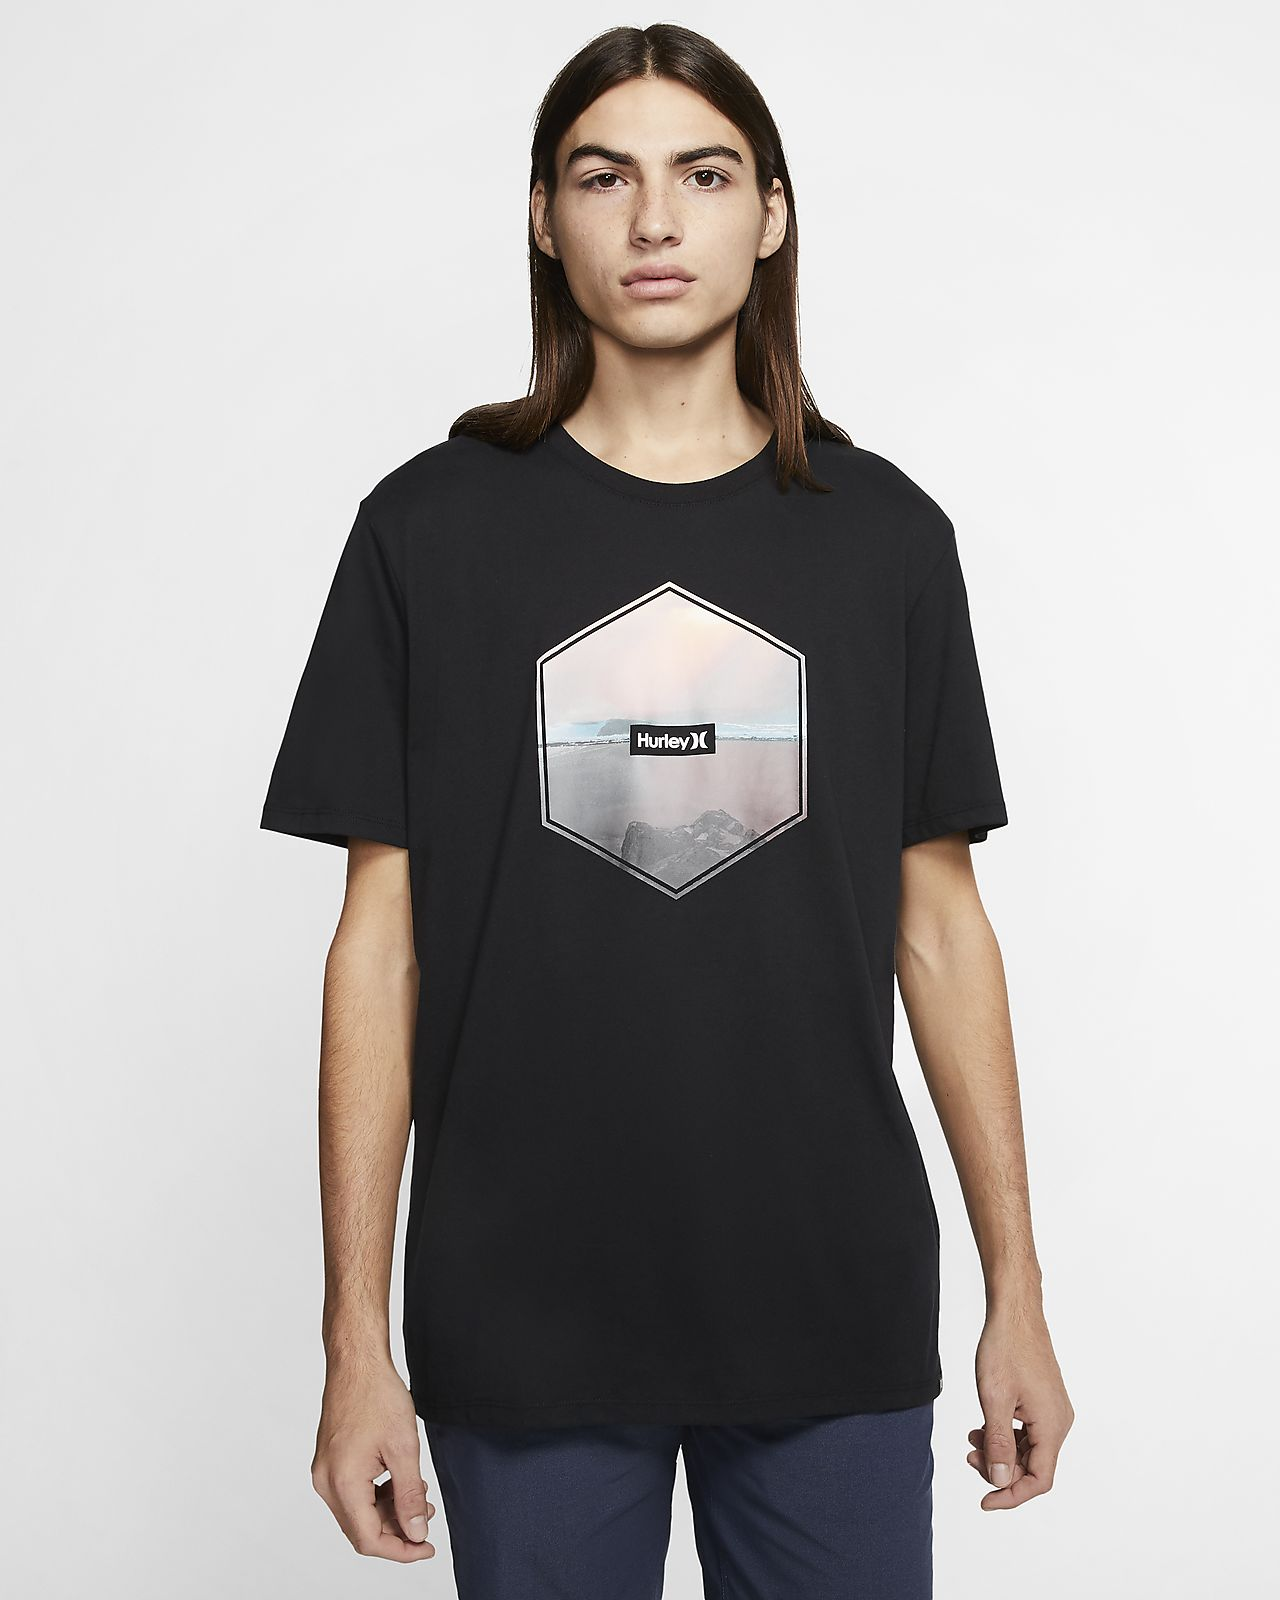 Details about Men's Nike Dry Training T Shirt